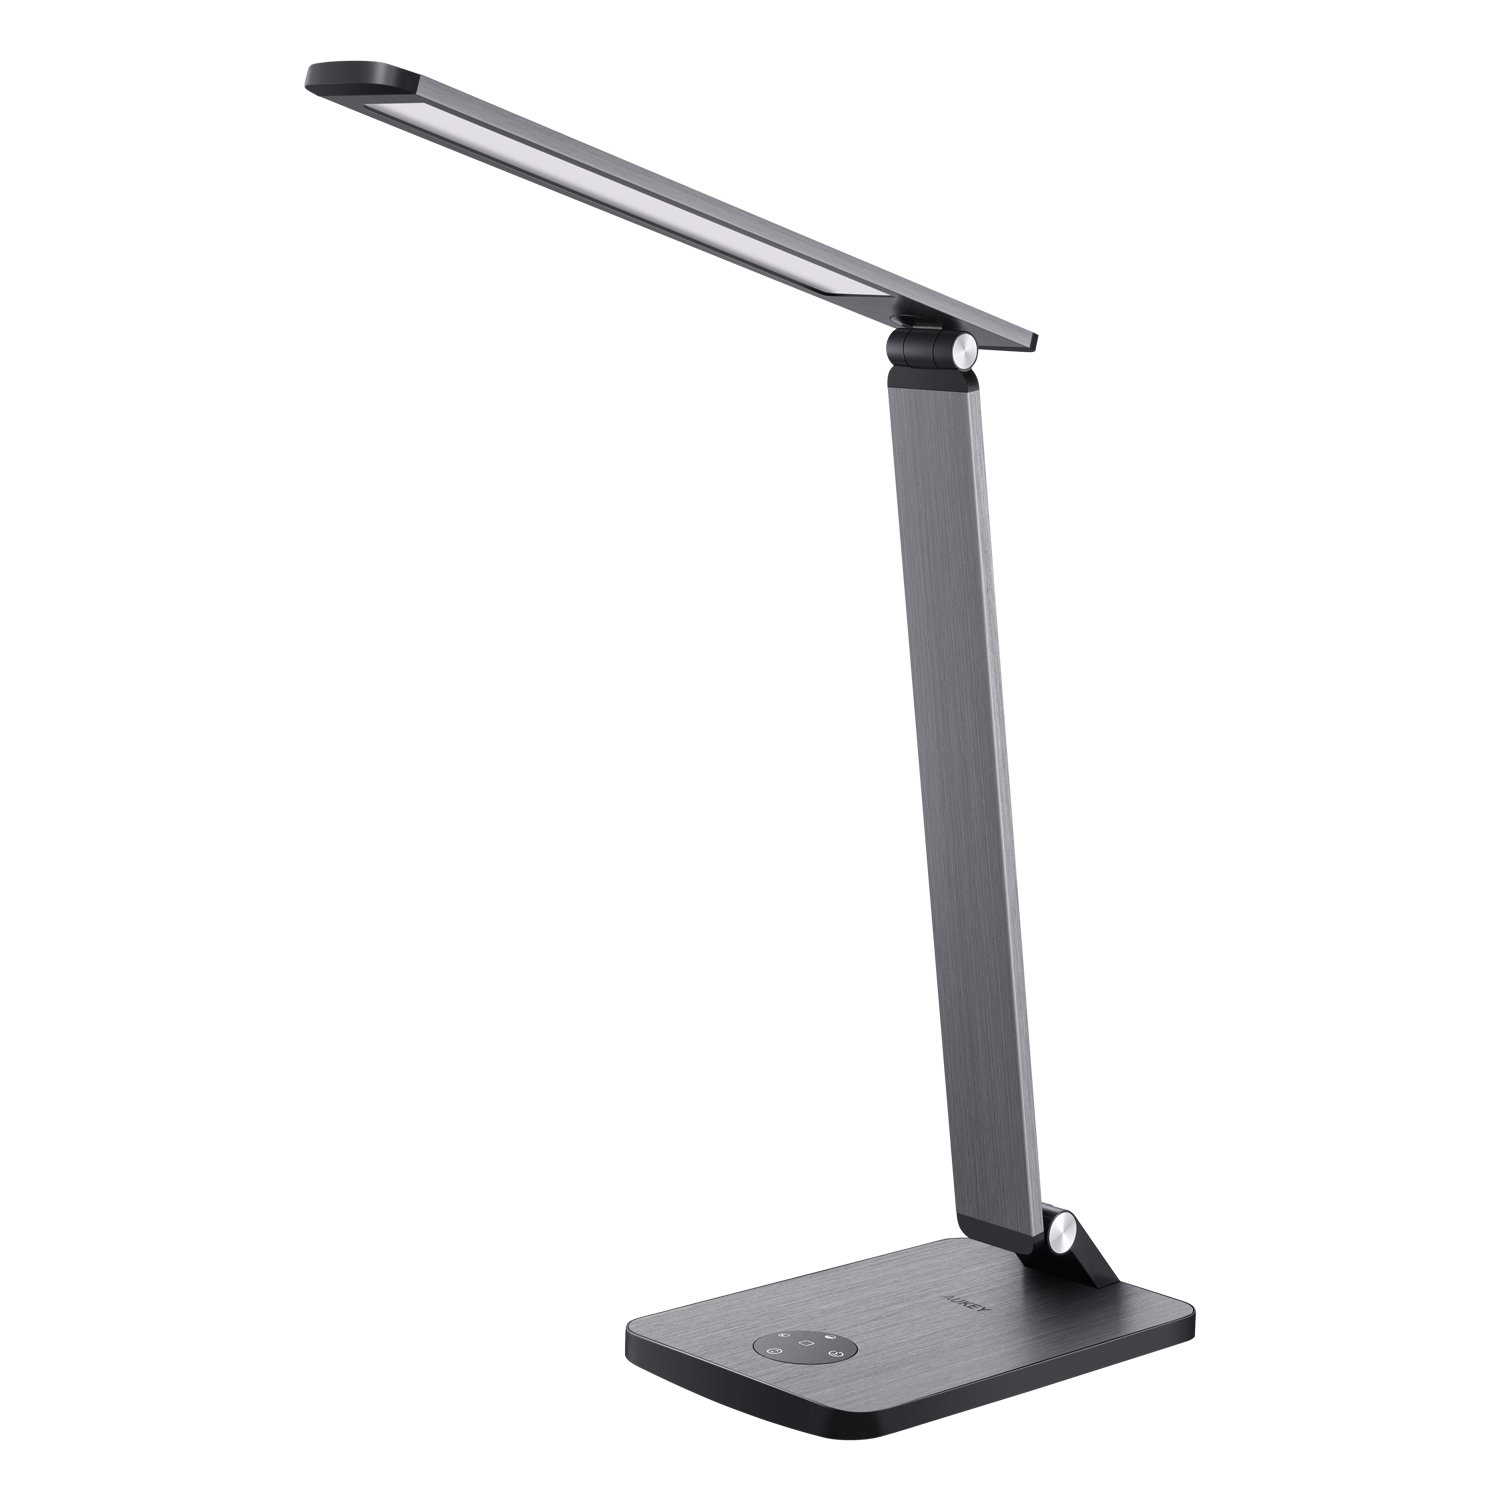 AUKEY Reading Lamp, 10W Metal LED Table Light with High-Speed USB Charging Port, Stepless Brightness & Color Temperature, Touch Control, Timer